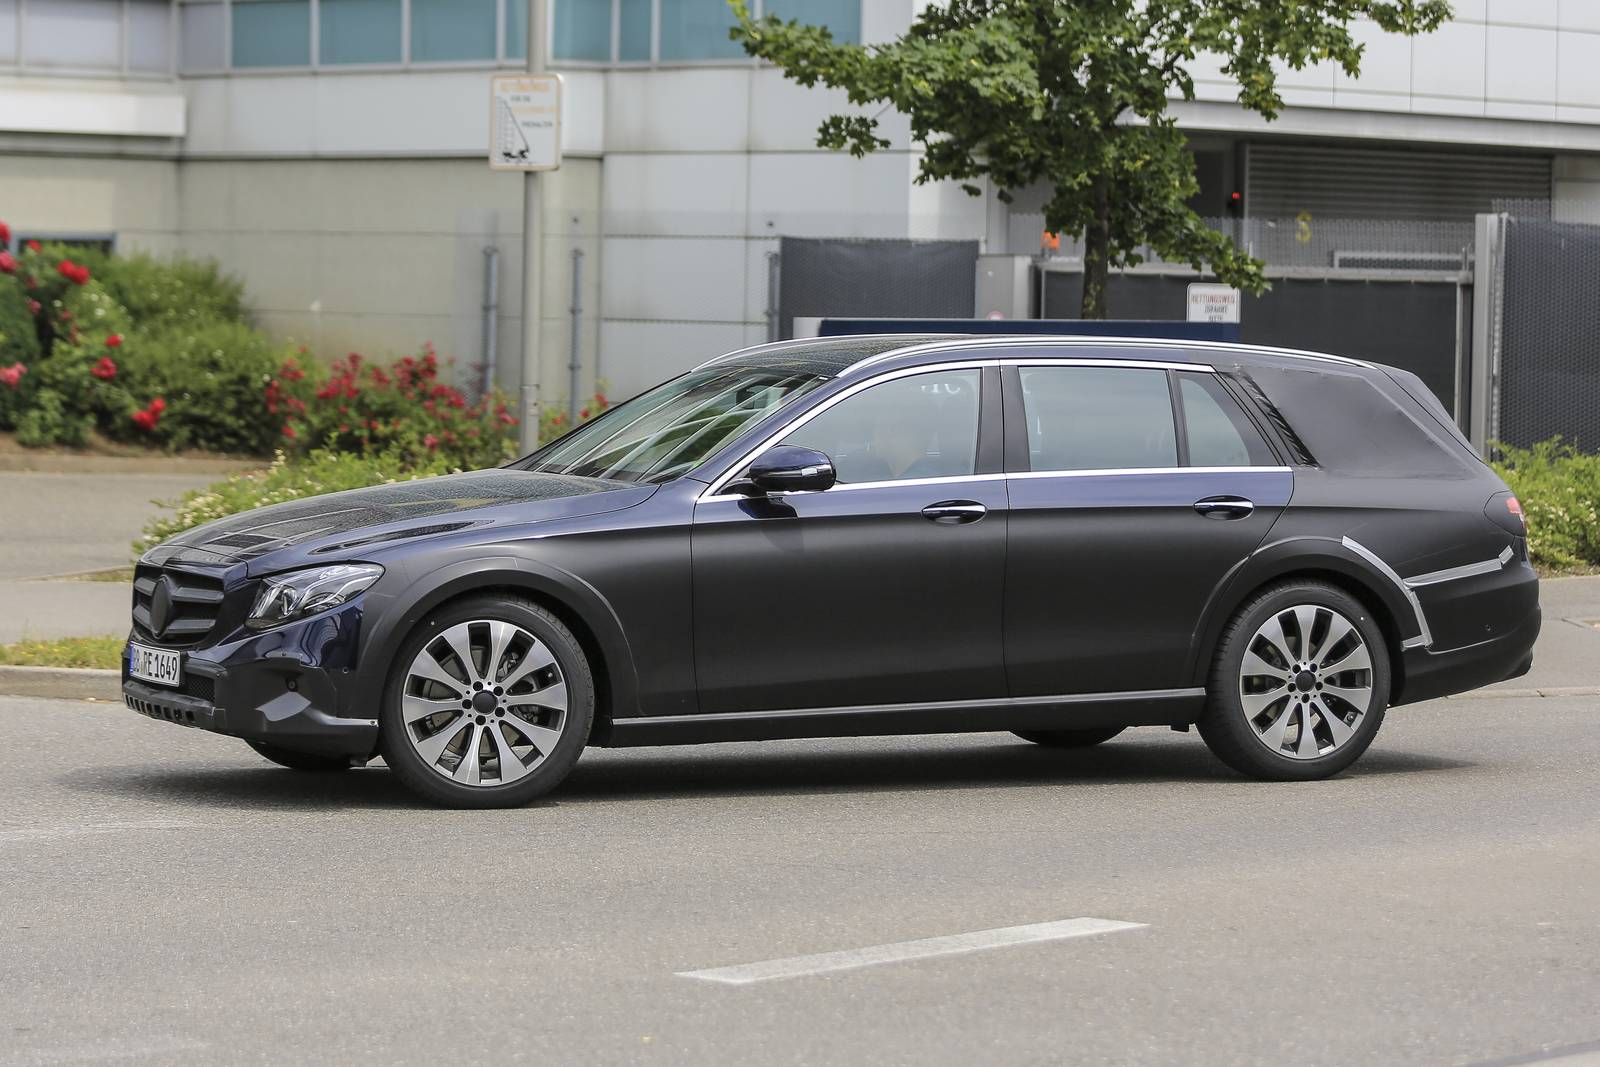 2018 mercedes benz e class estate will have all terrain model for Mercedes benz e class models